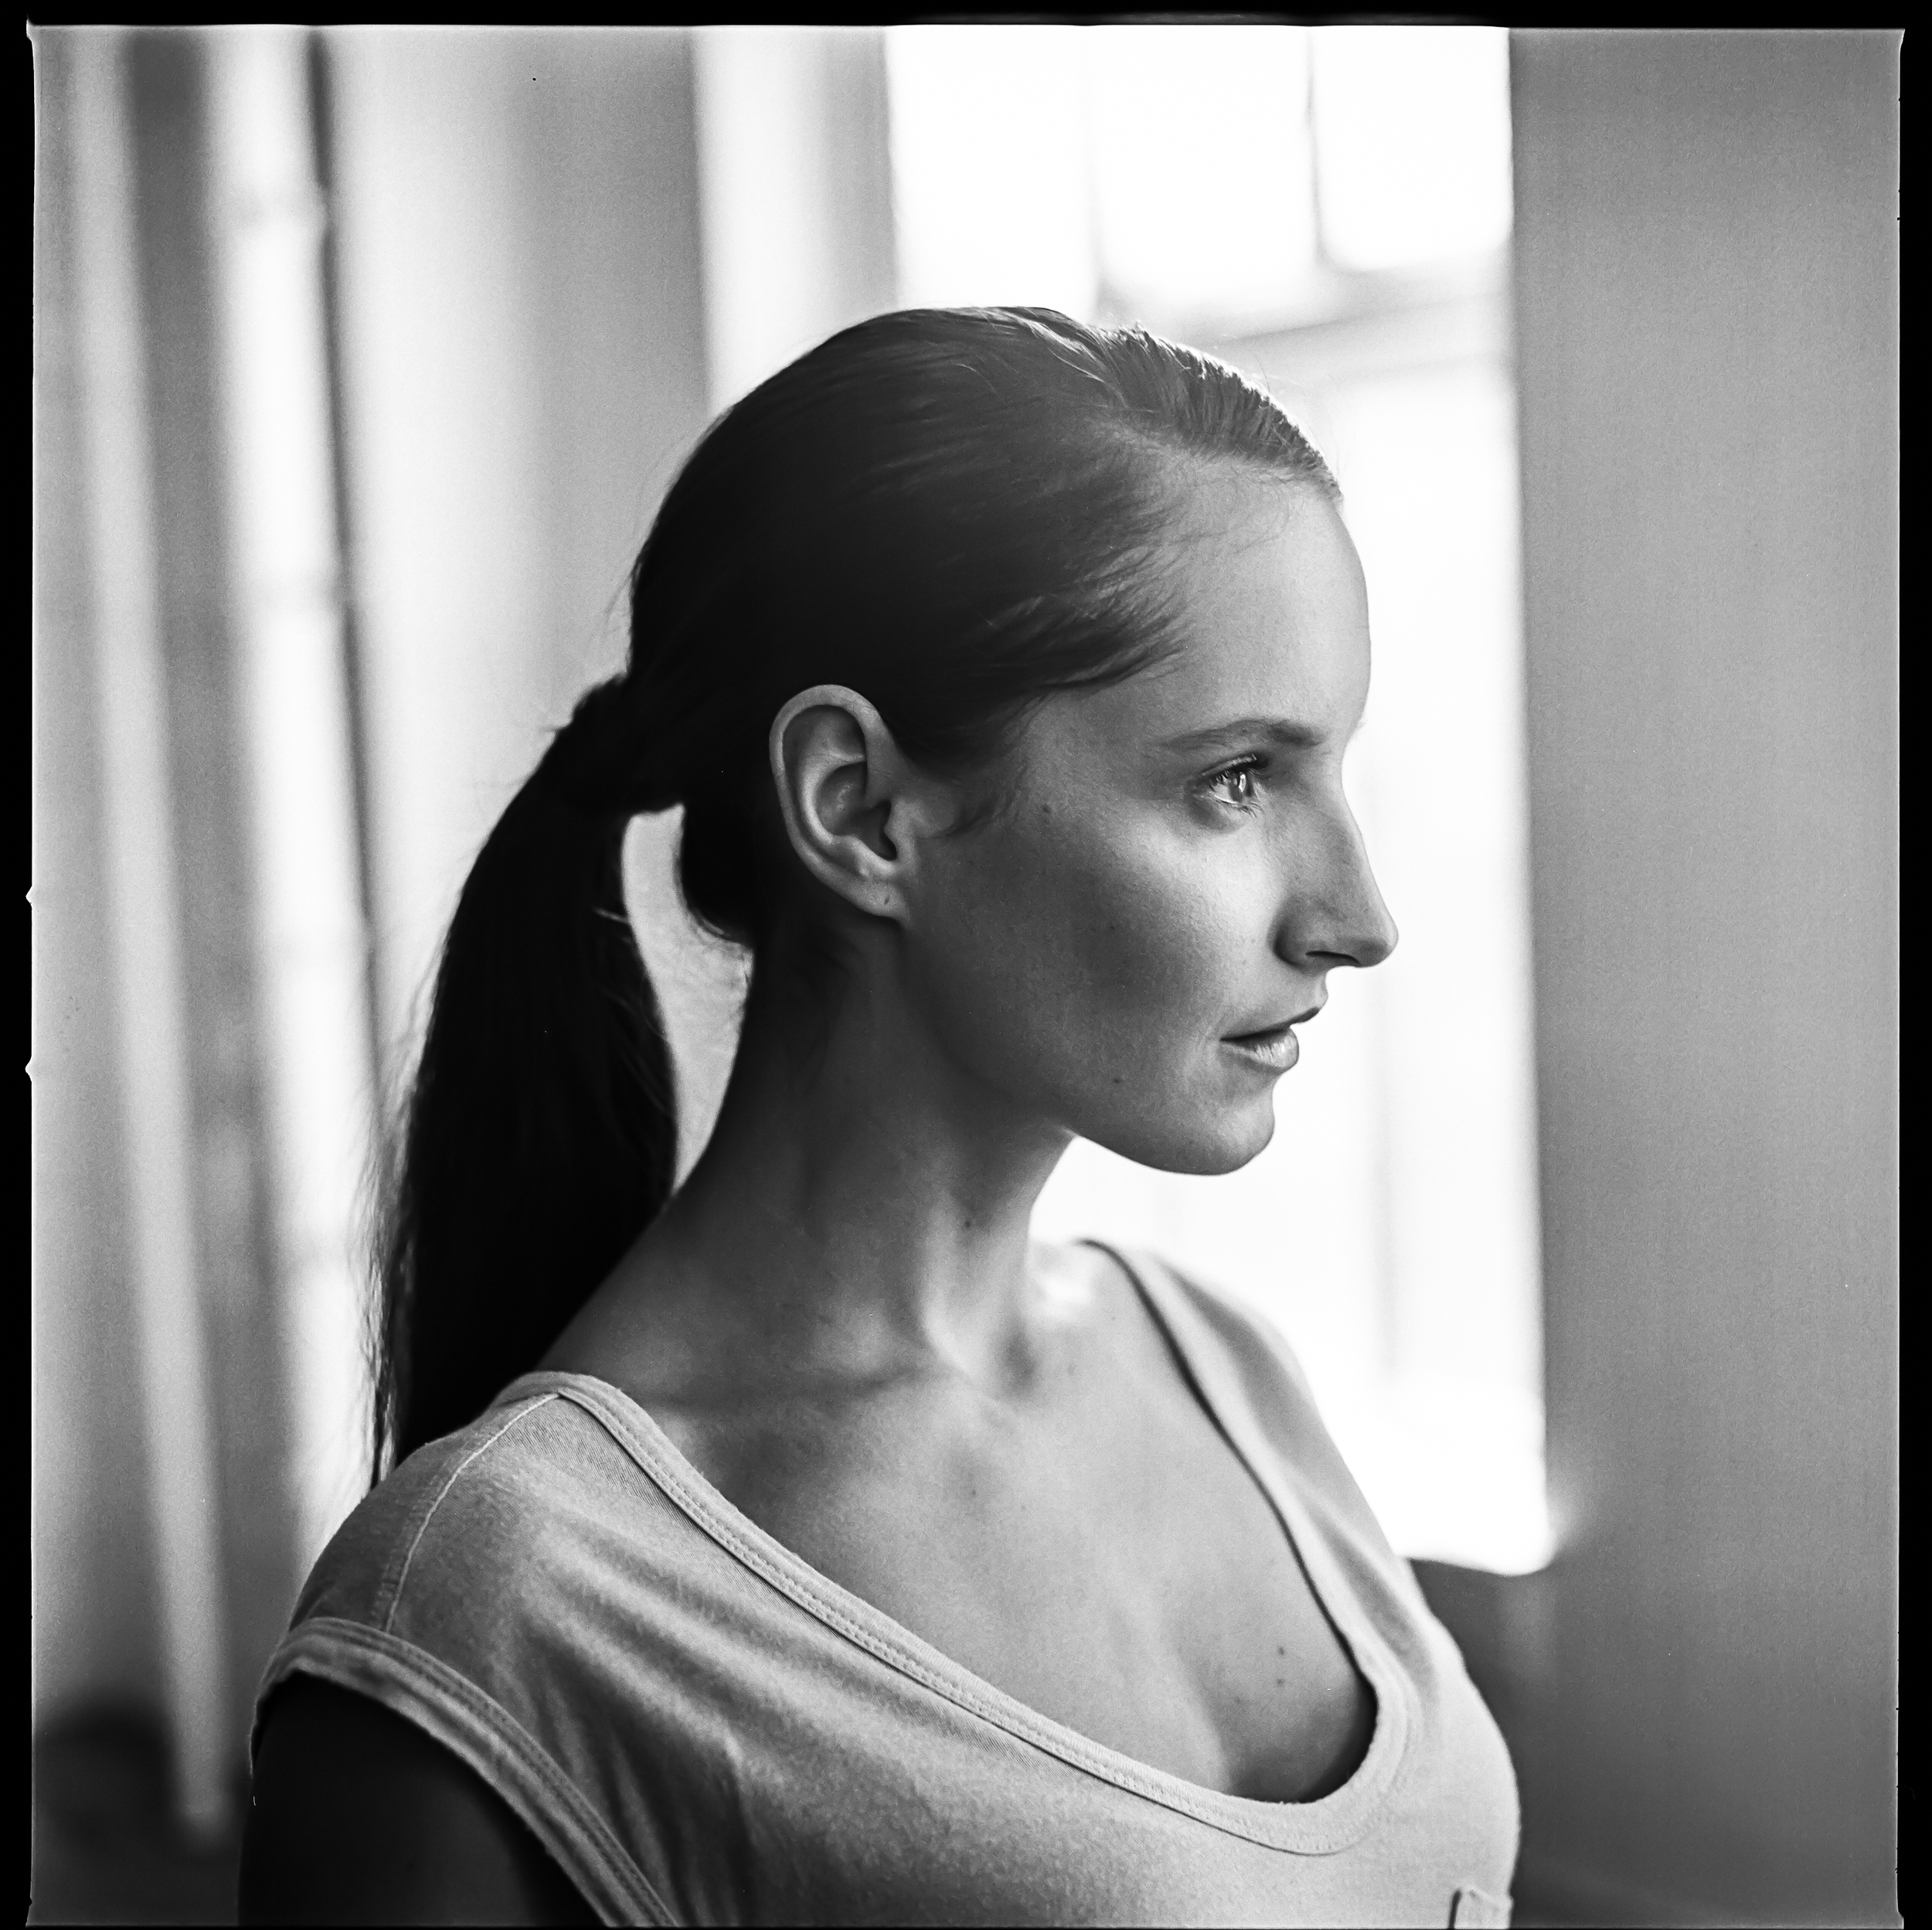 Model - Au Naturale Cosmetics NYC 2014 - Hasselblad 500c Tri-X 400